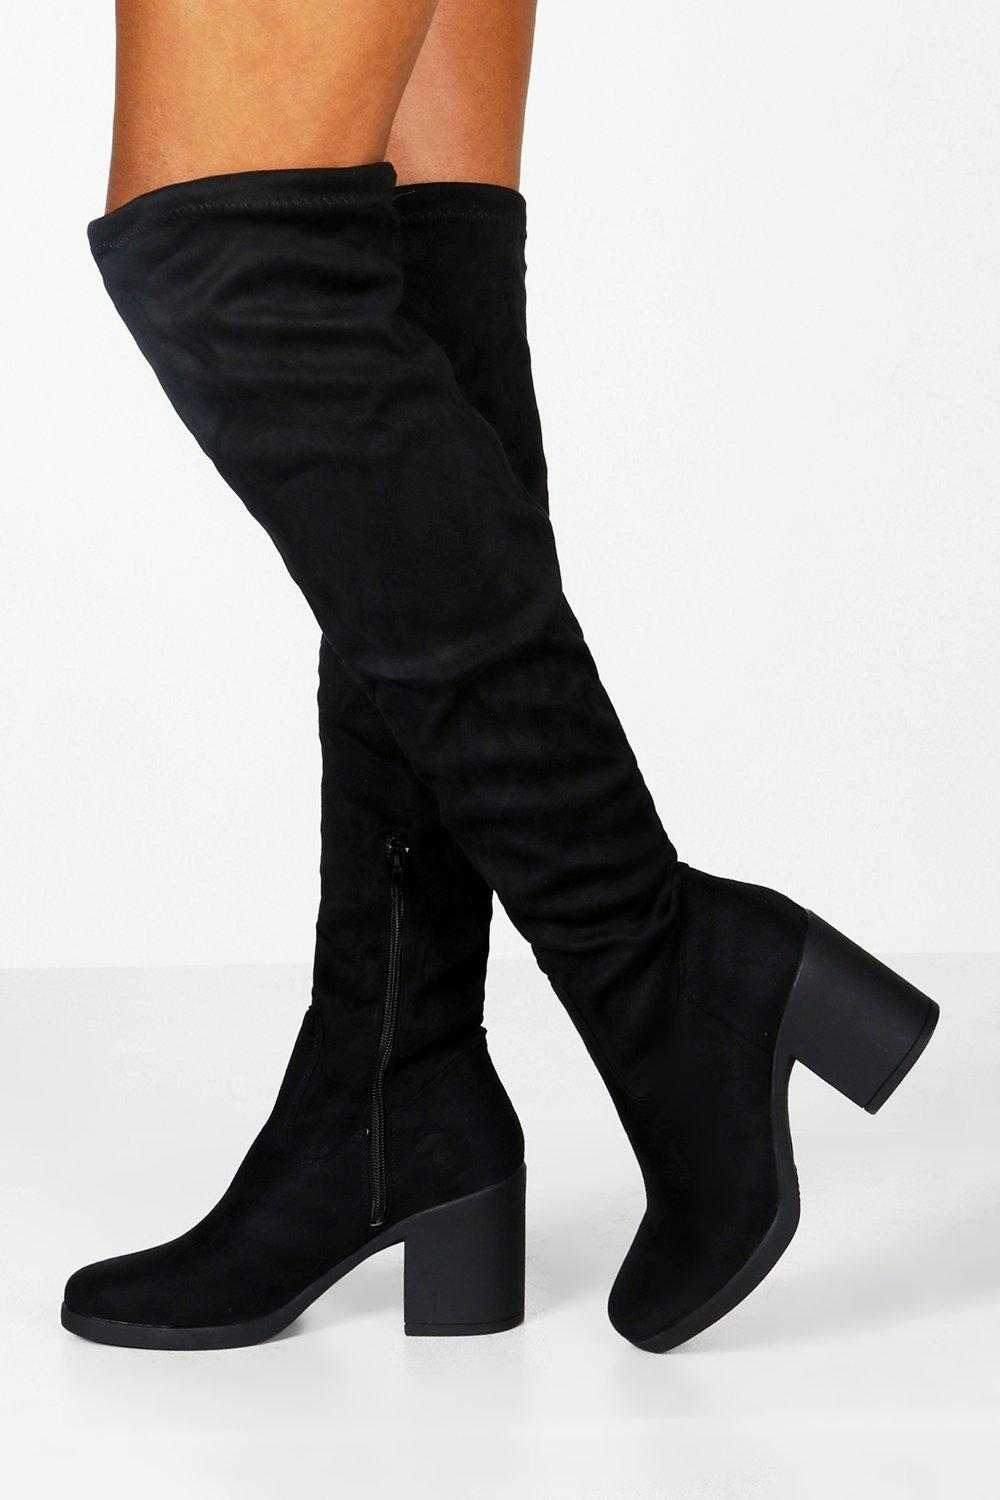 Over The Knee Boots Chunky Over the Knee Boots